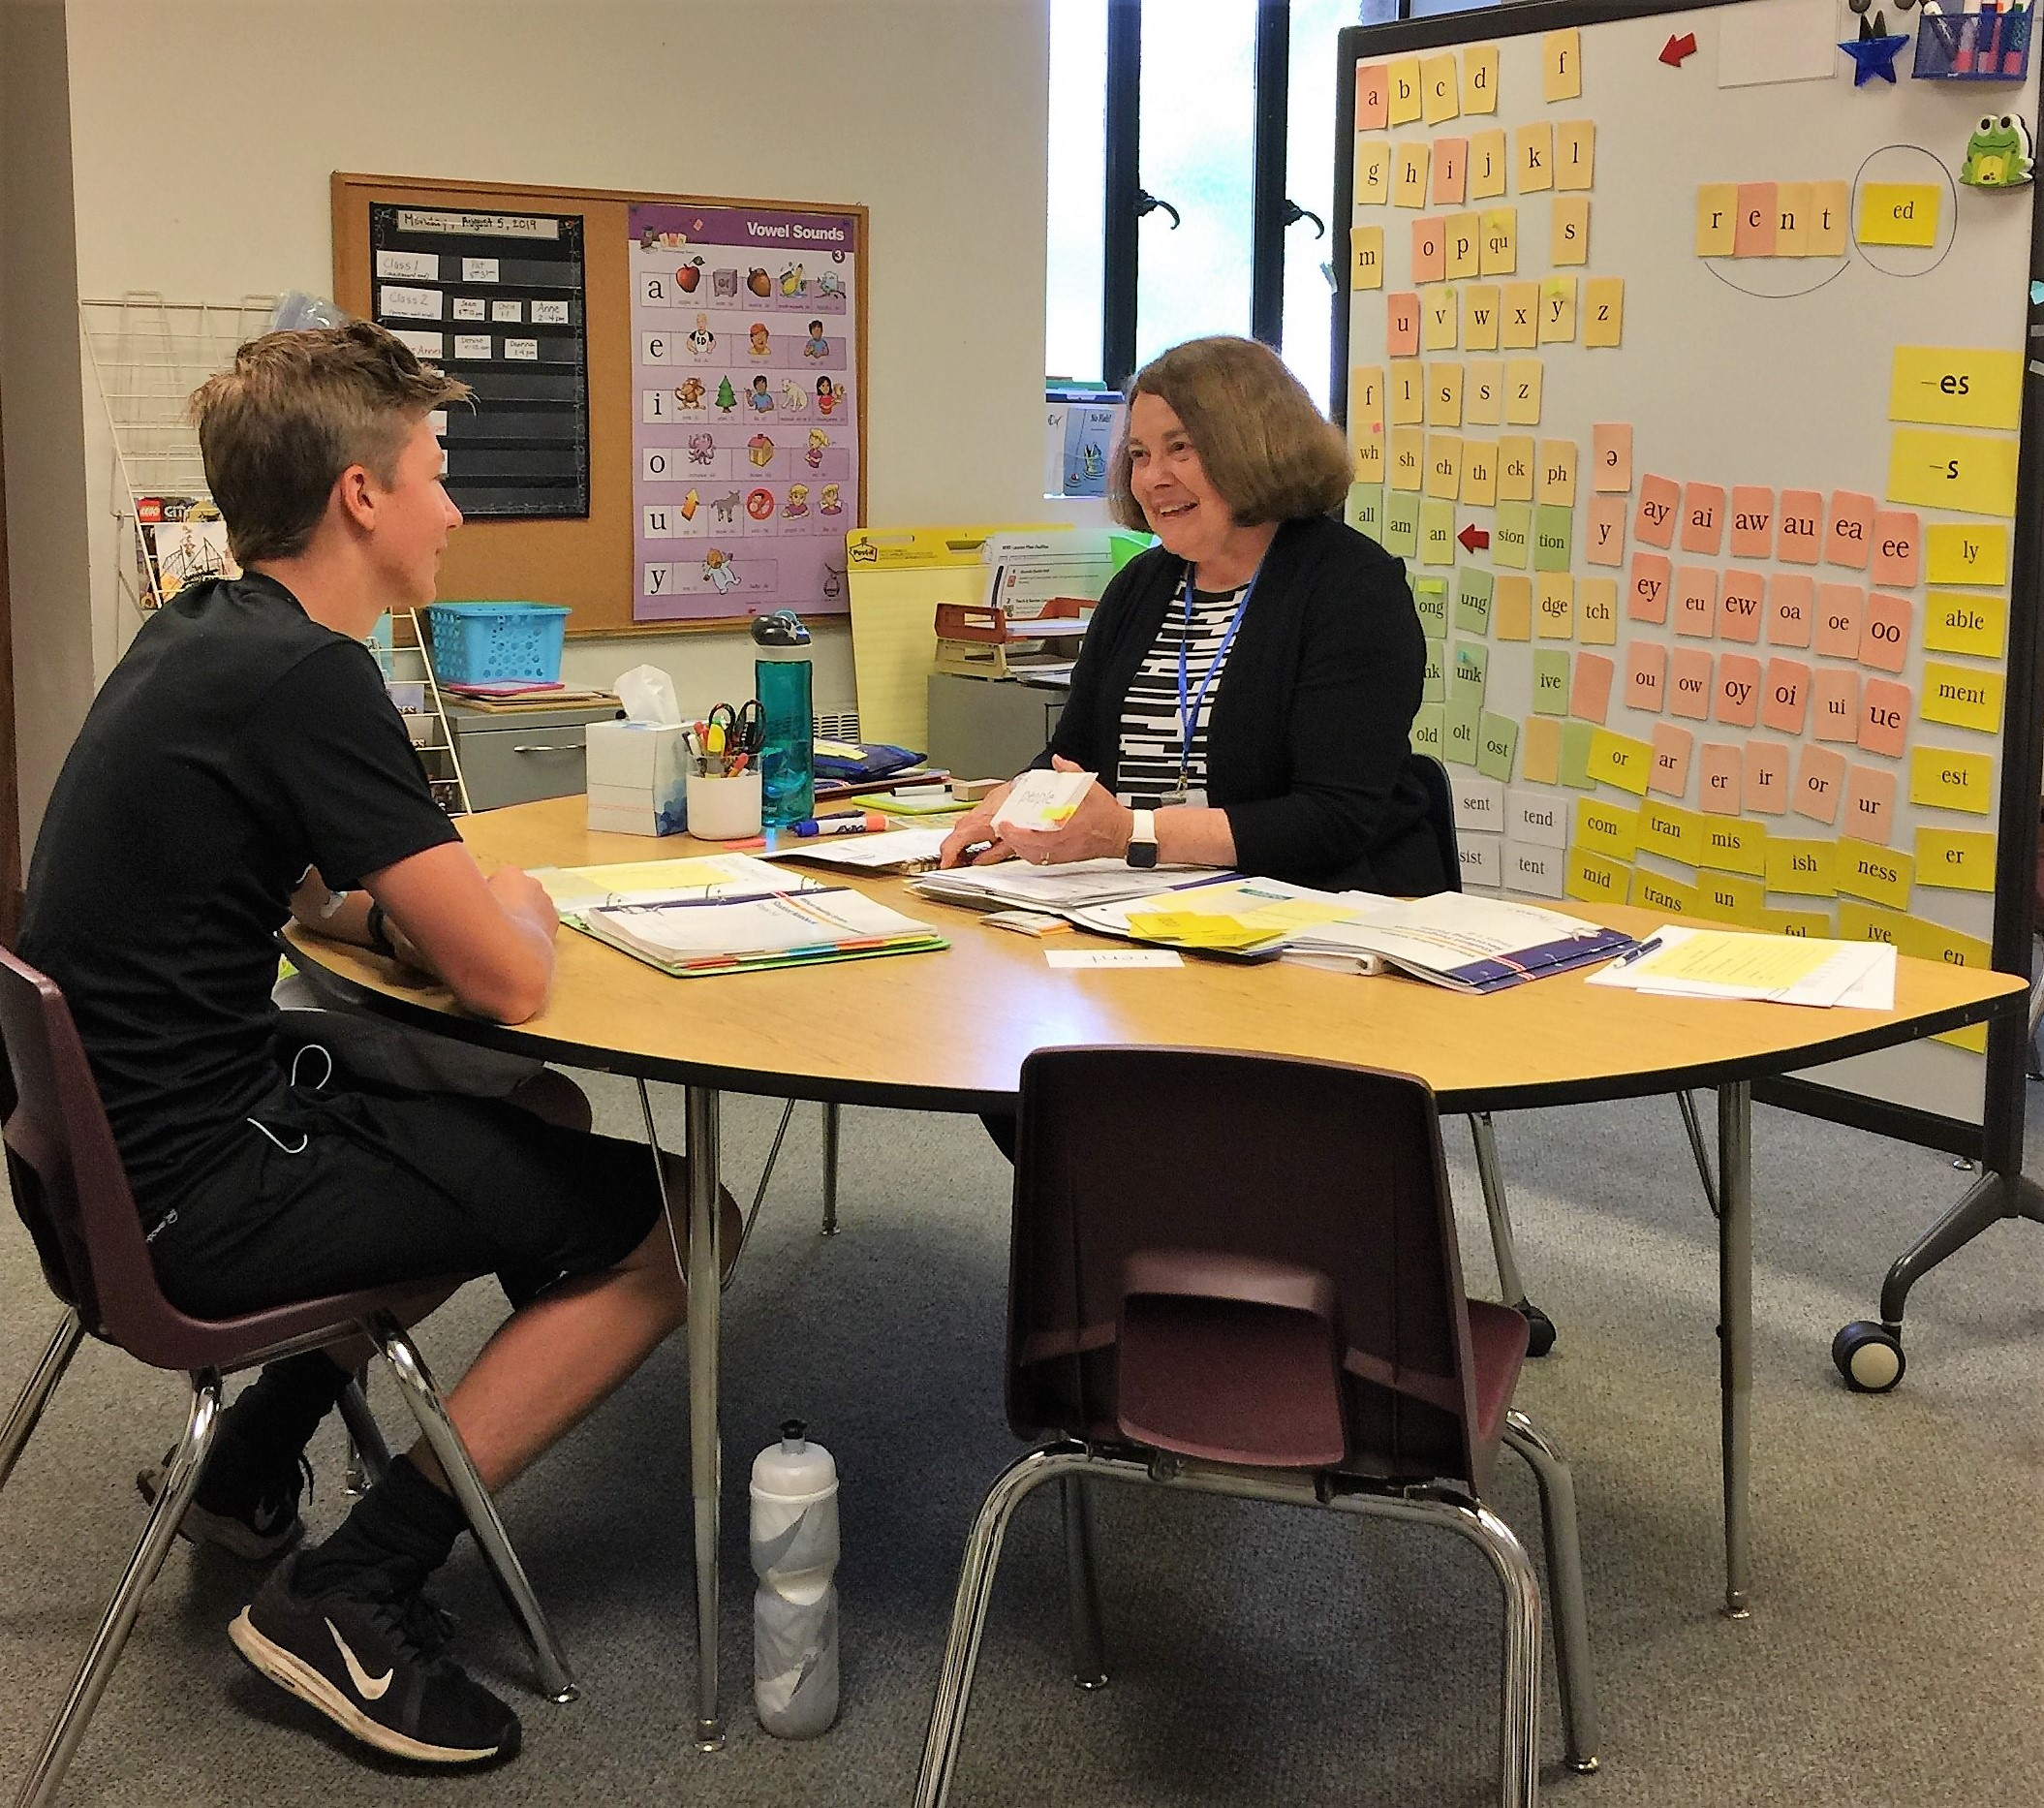 Dyslexia tutoring a matter of justice for Wisconsin kids - United